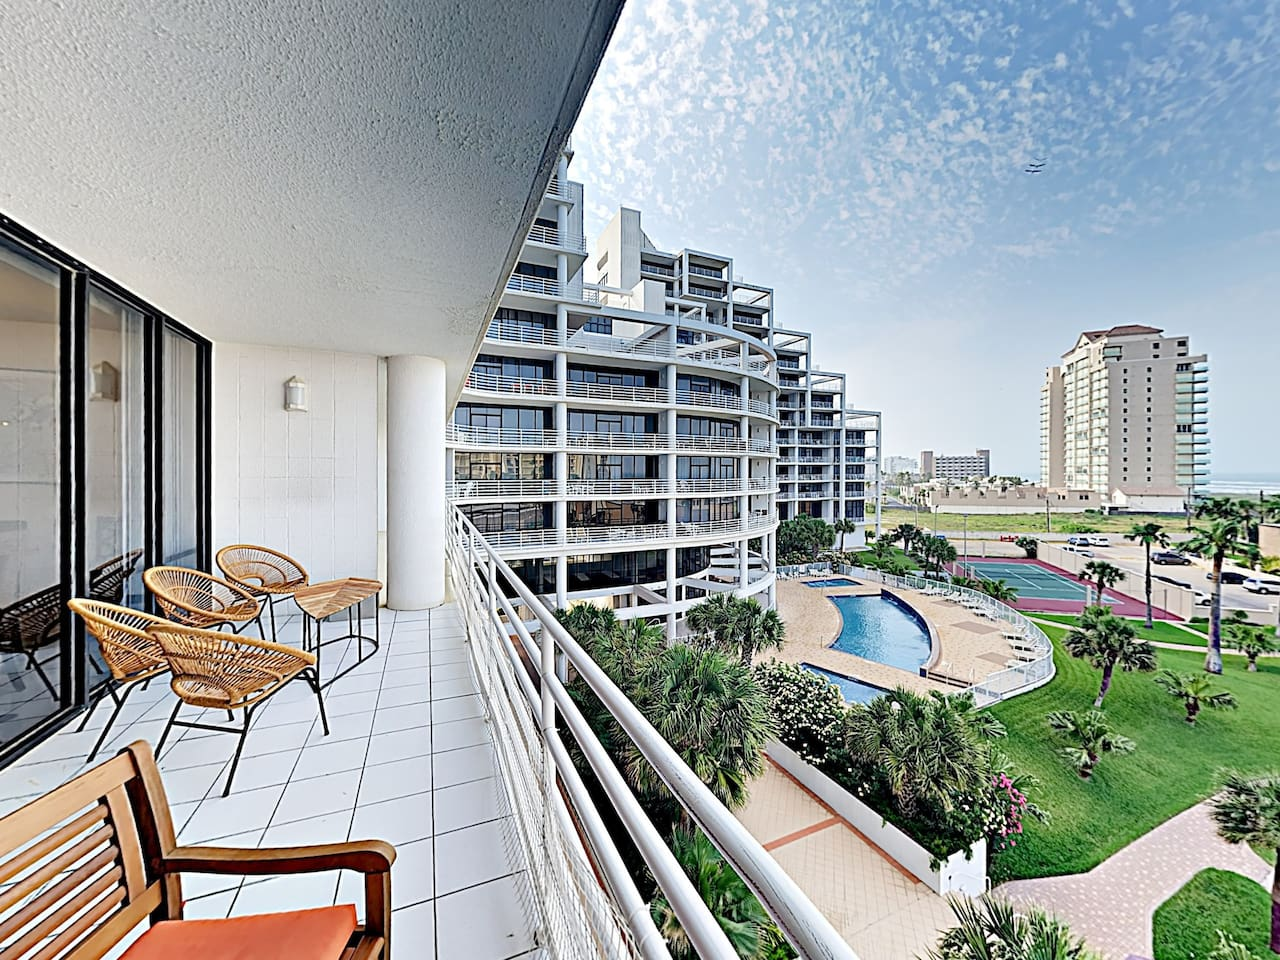 Welcome to South Padre Island! This modern condo with Gulf views is professionally managed by TurnKey Vacation Rentals.